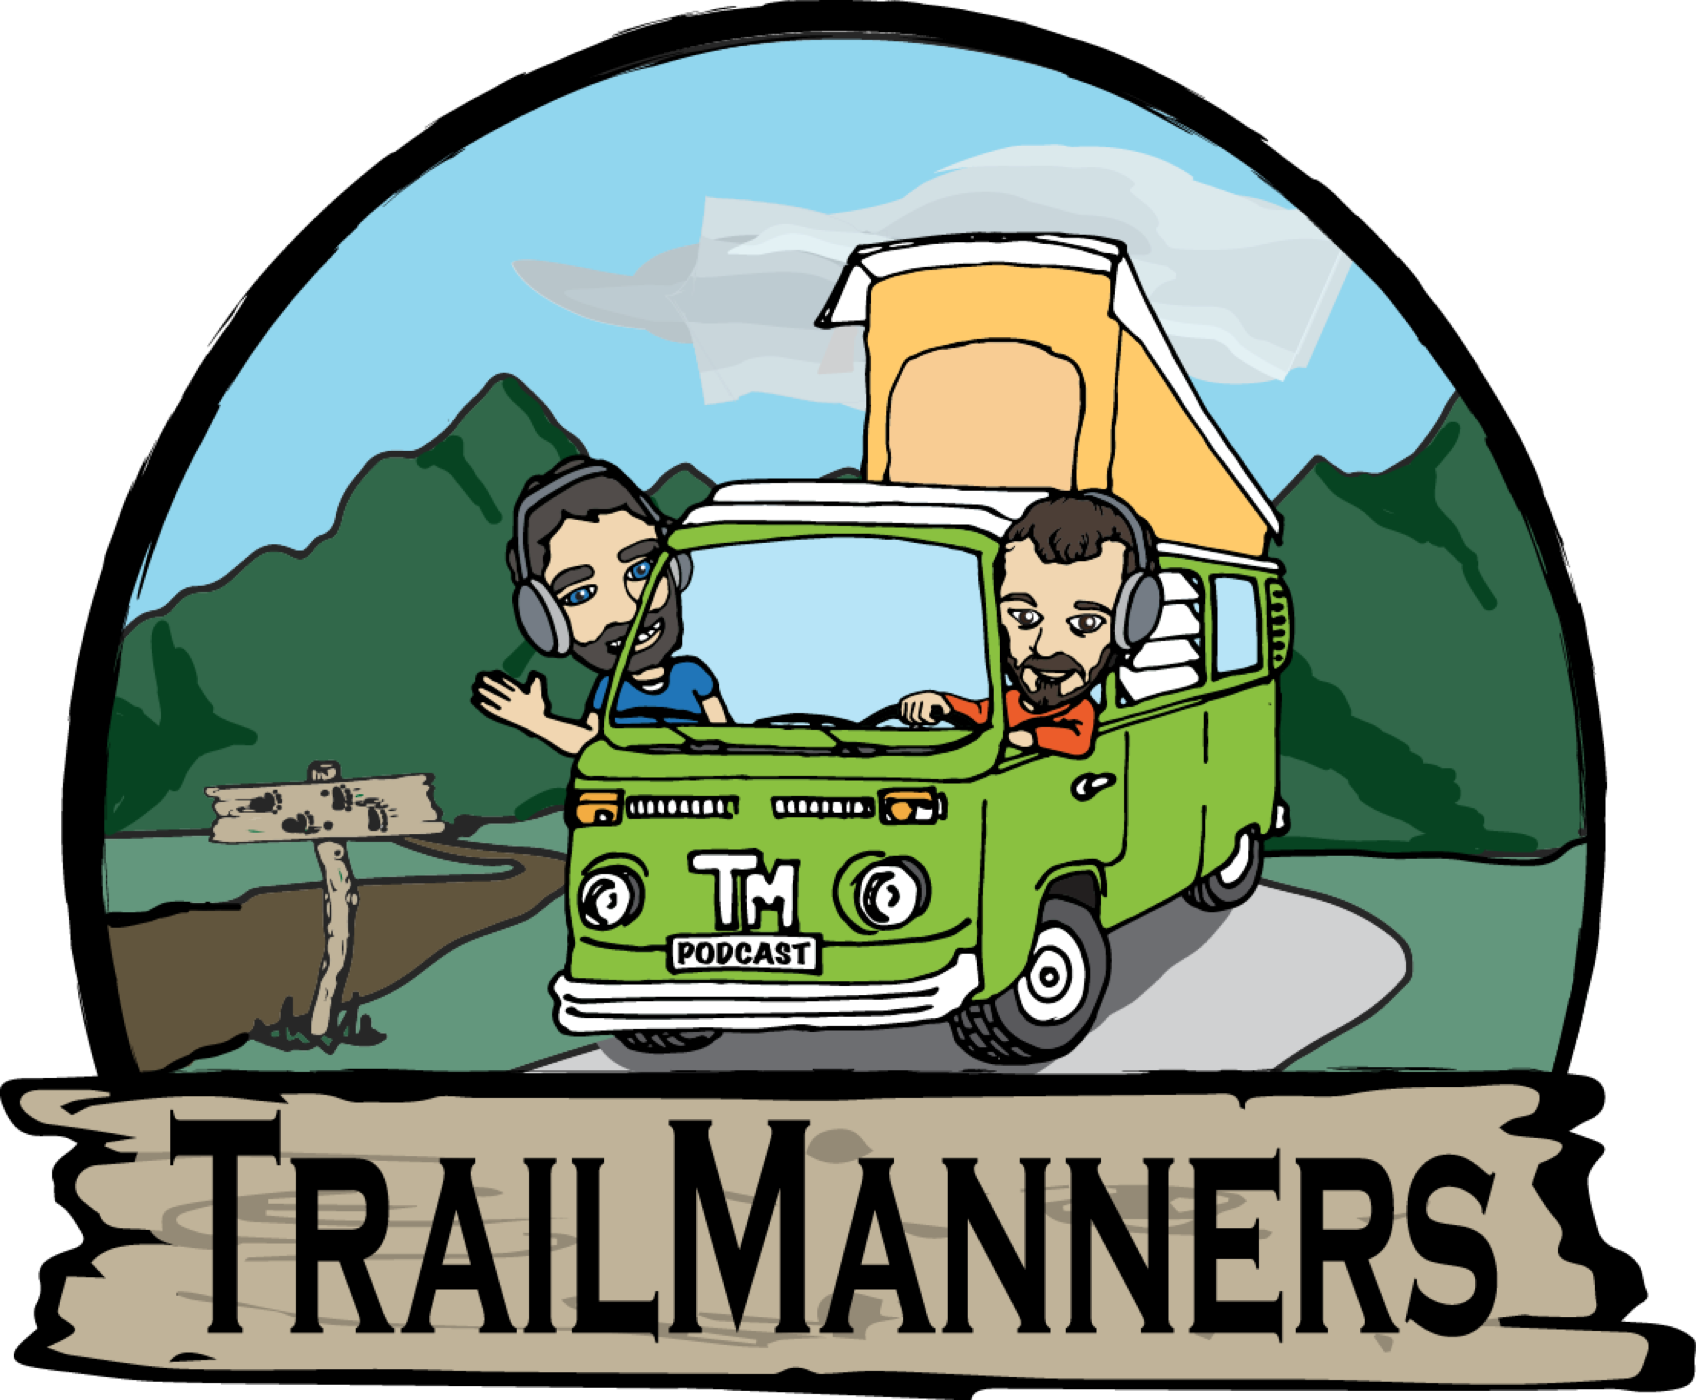 TrailManners